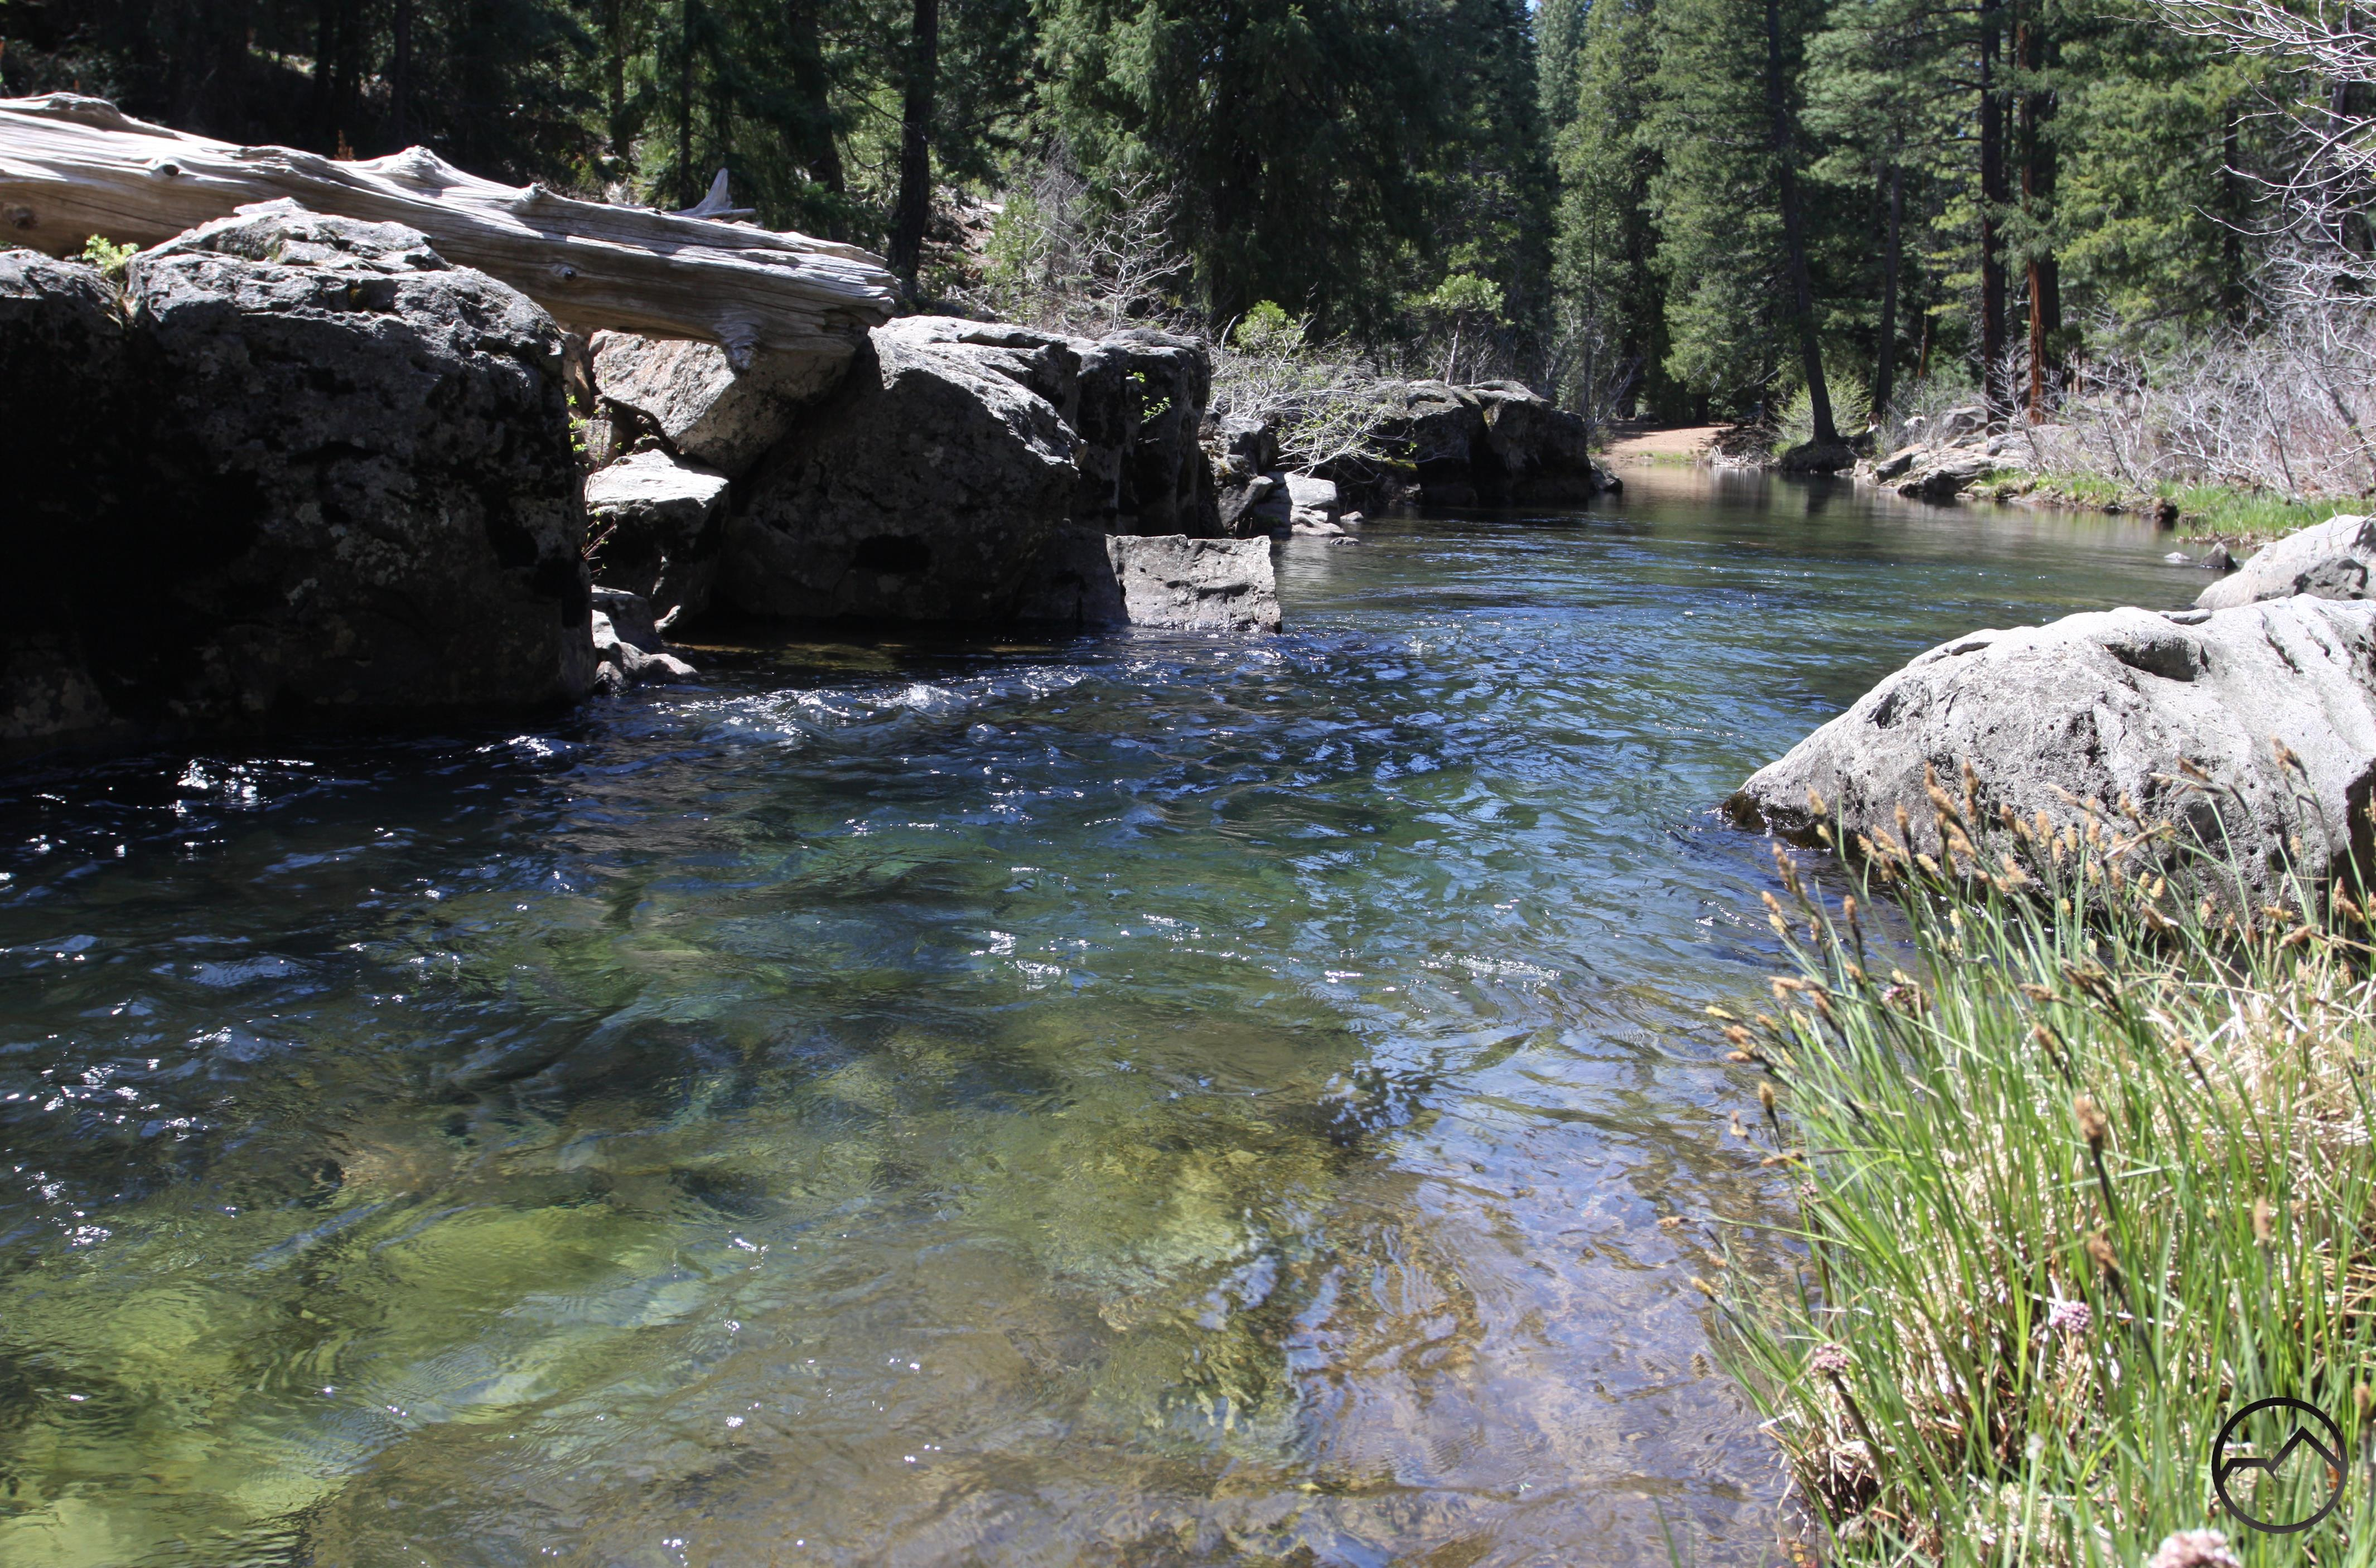 McCloud River Trail: Nitwit Camp to Cattle Camp Swimming